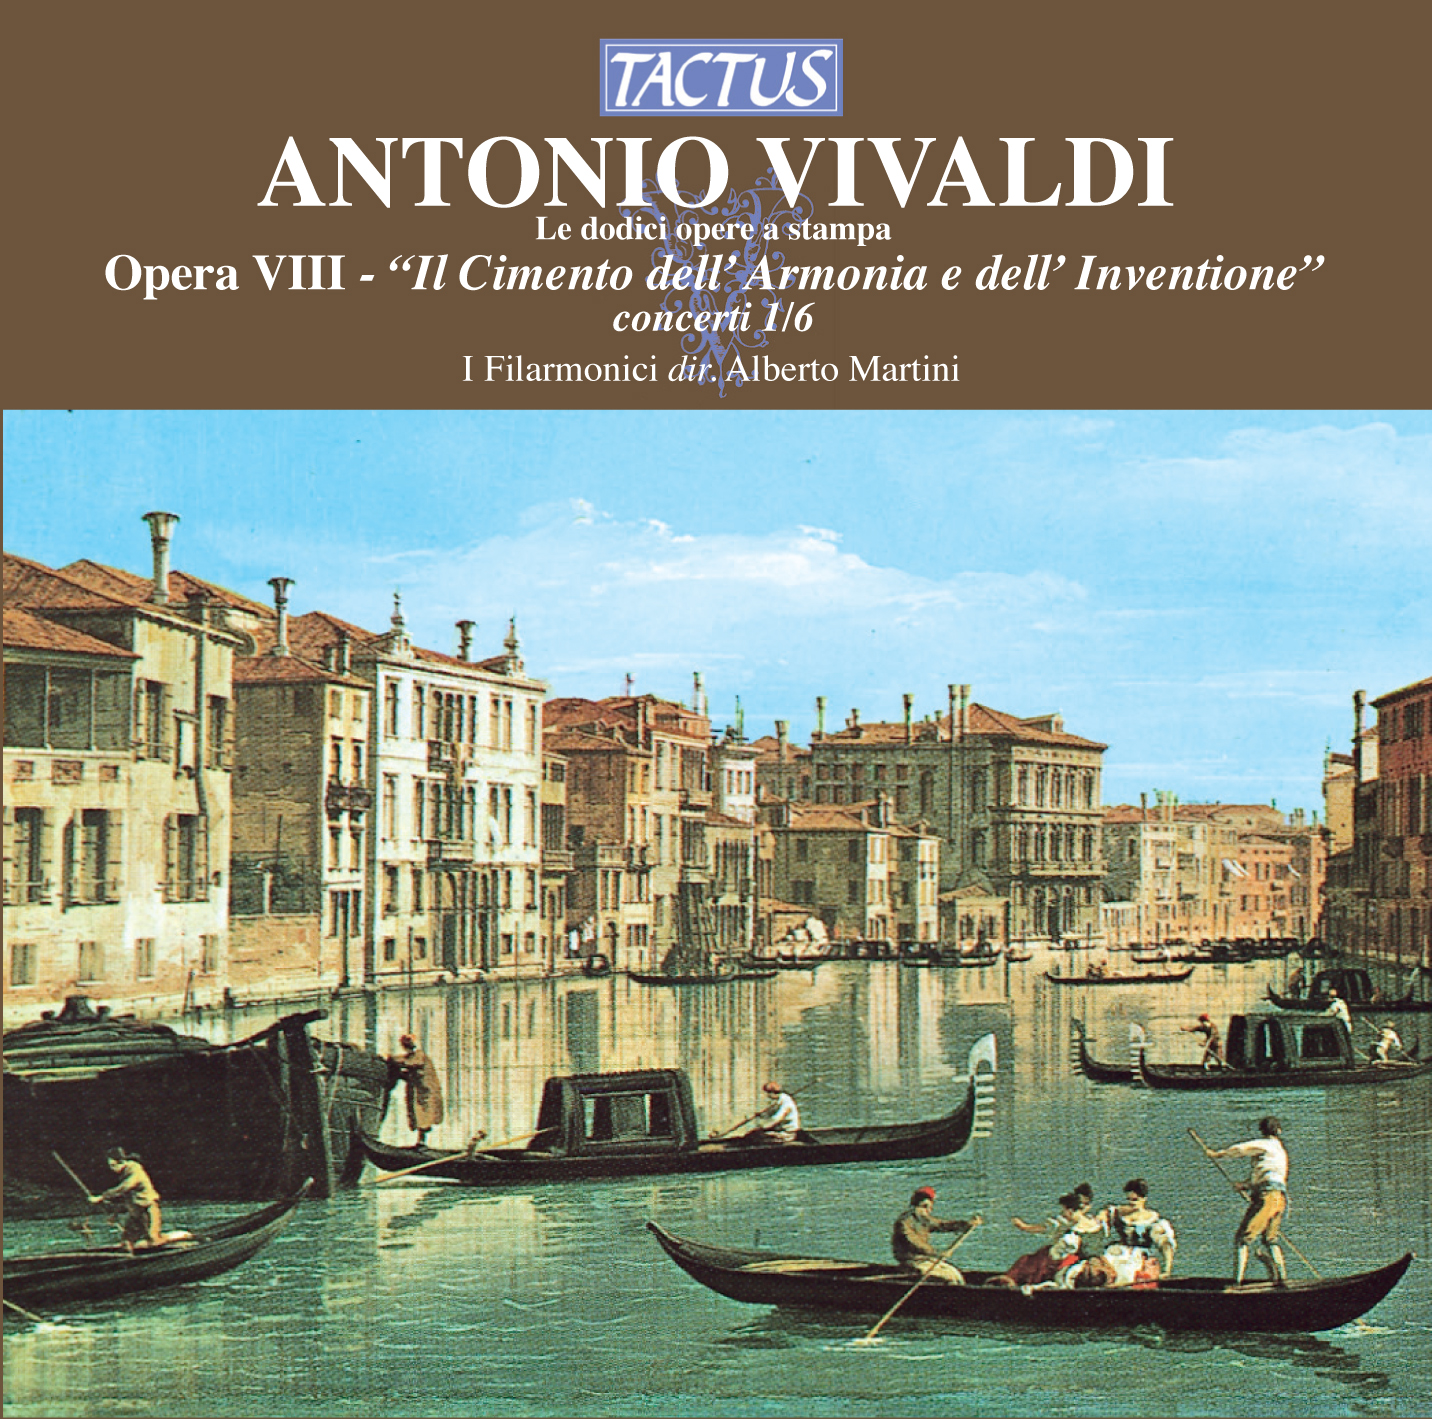 "Violin Concerto in E-Flat Major, Op. 8, No. 5, RV 253, ""La tempesta di mare"", Violin Concerto in E-Flat Major, Op. 8, No. 5, RV 253, ""La tempesta di mare"": I. Presto"